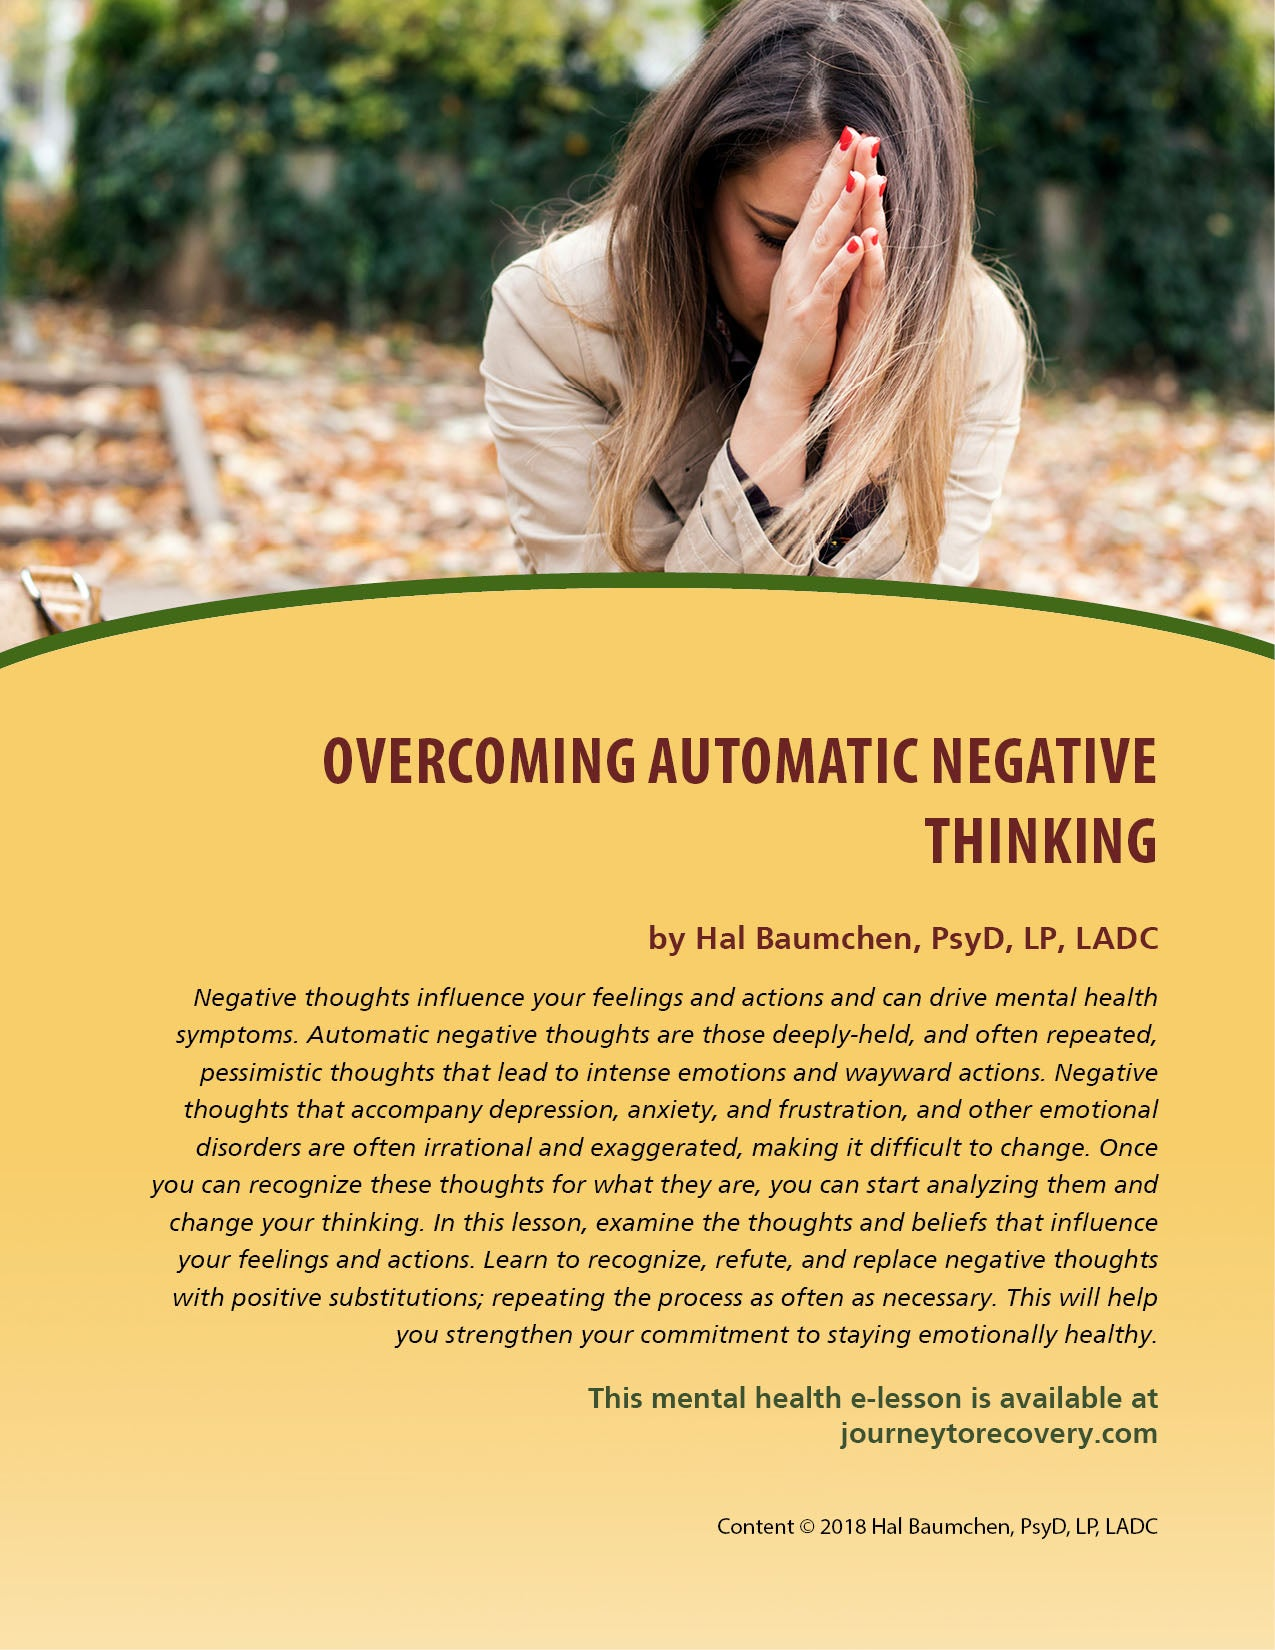 Overcoming Automatic Negative Thinking